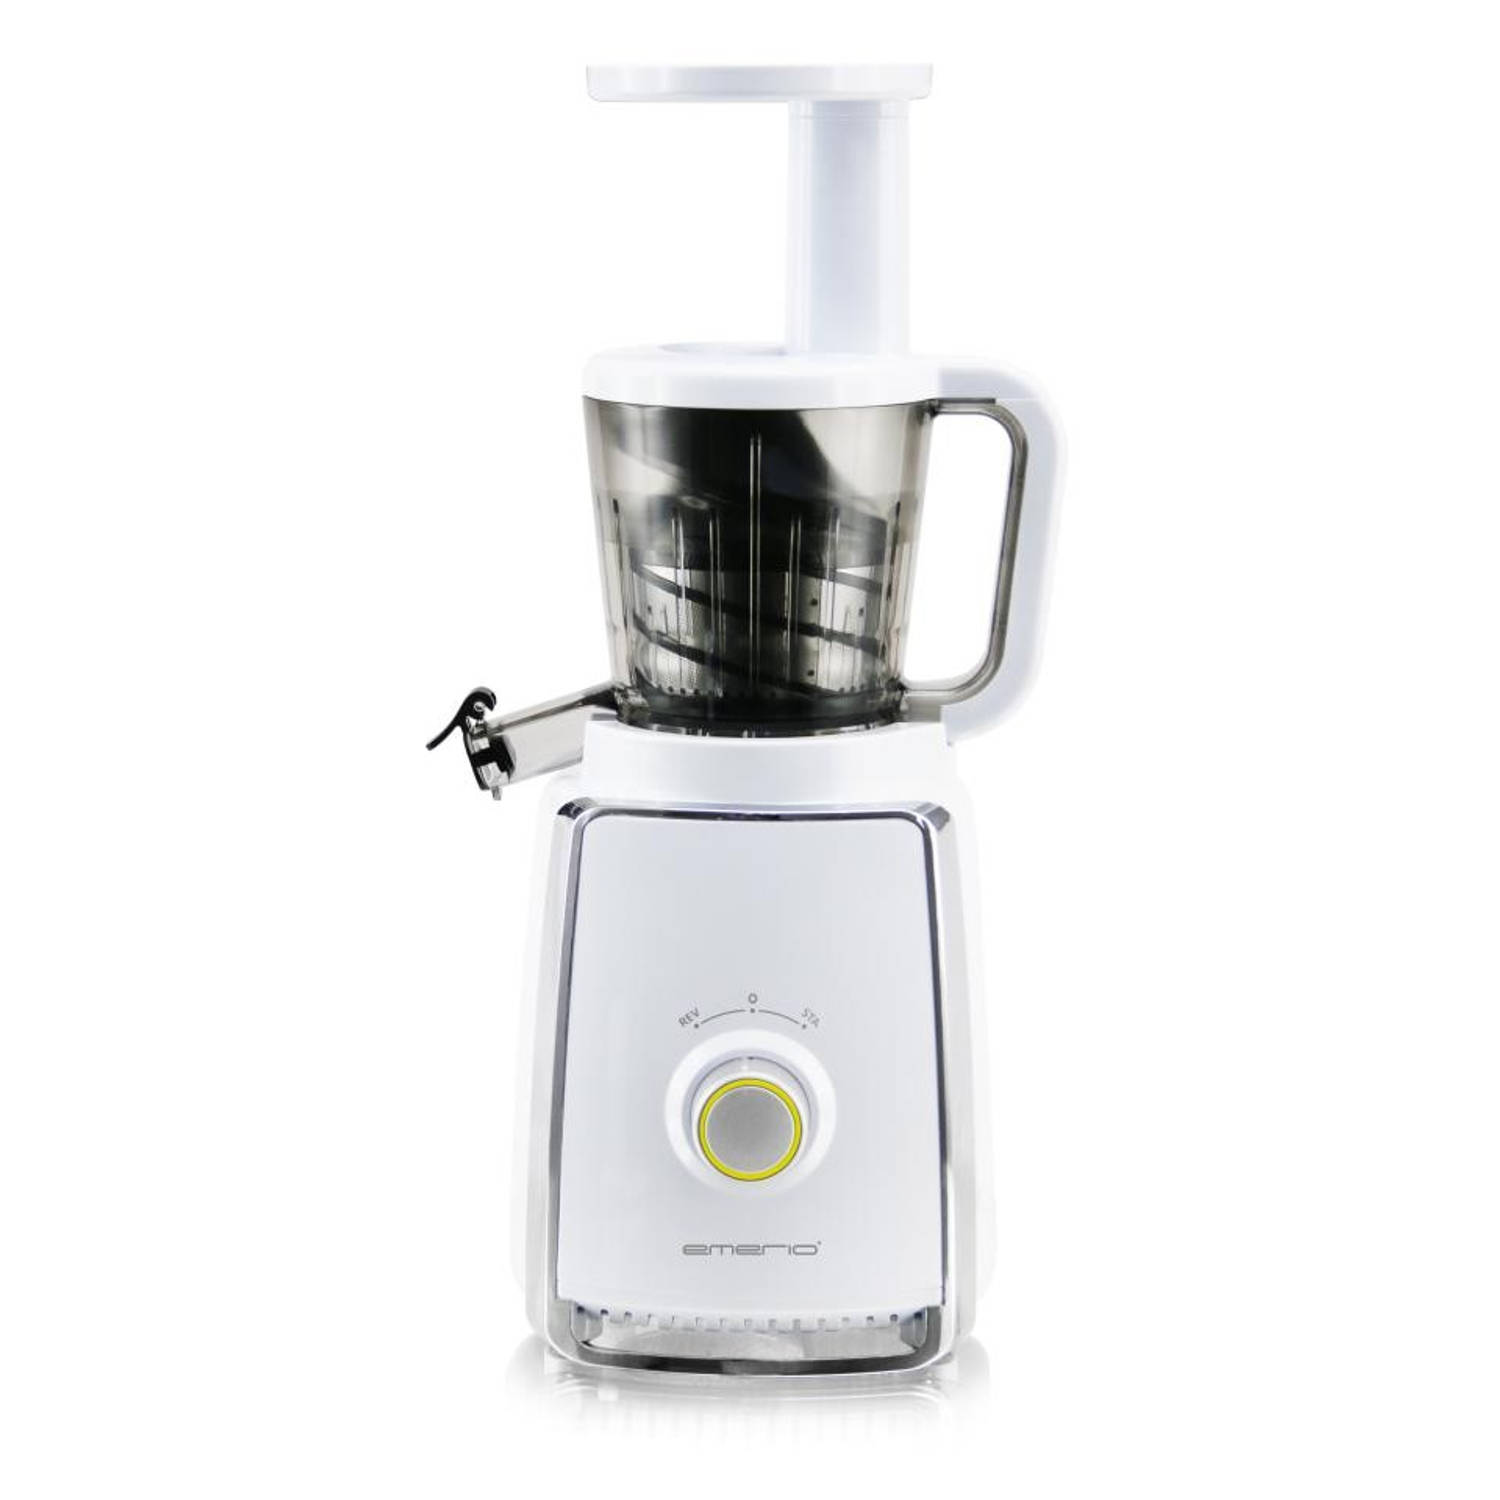 Emerio slow juicer SJ-110659.1